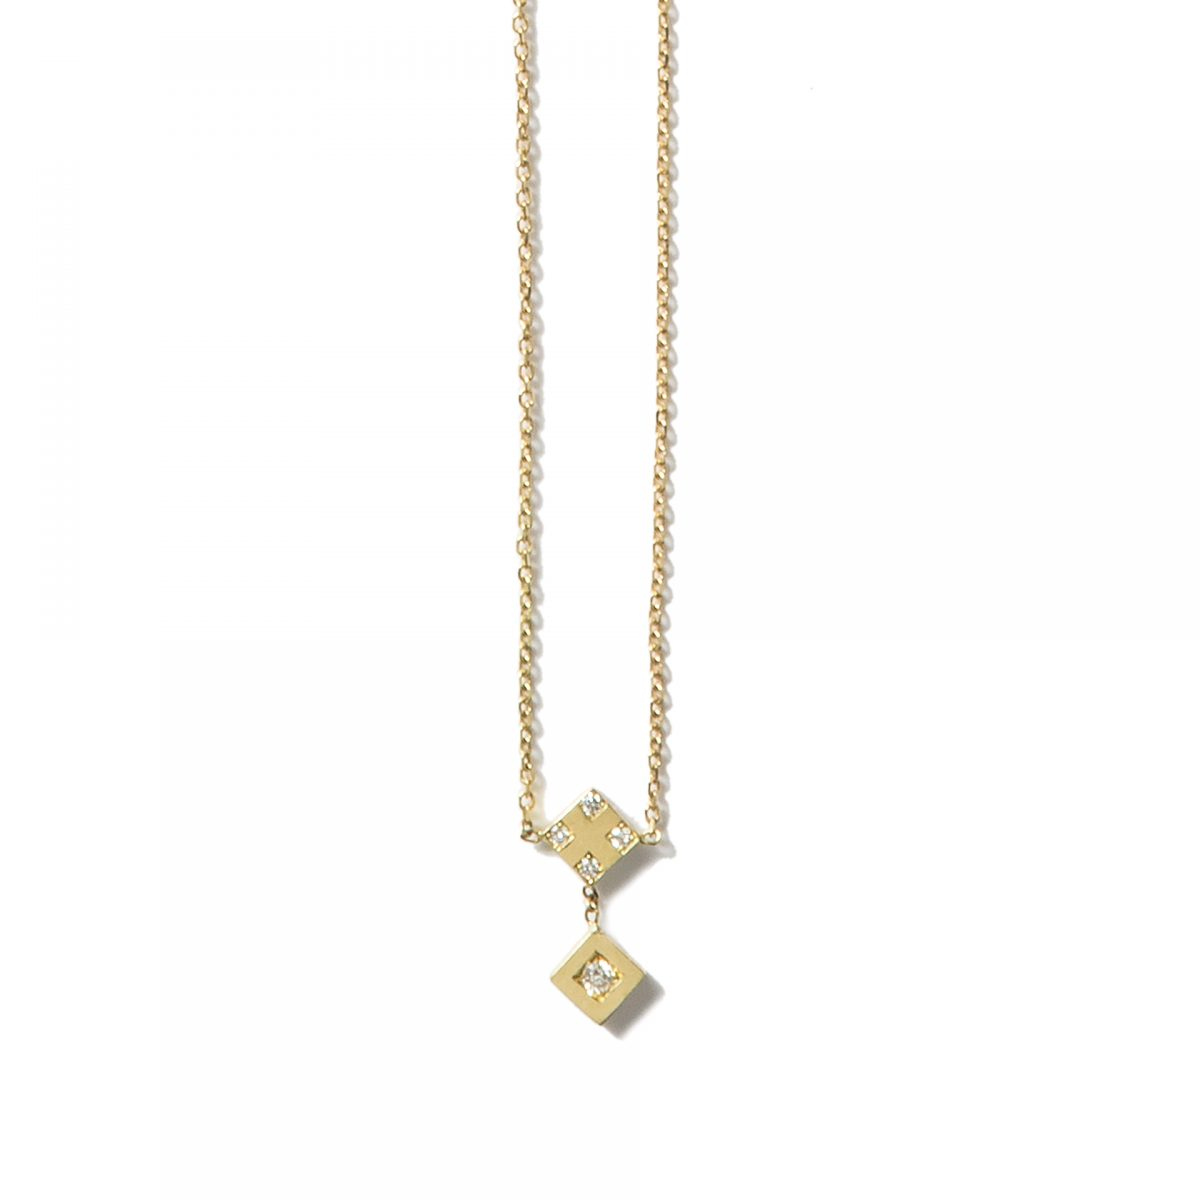 swp_necklace_302_191